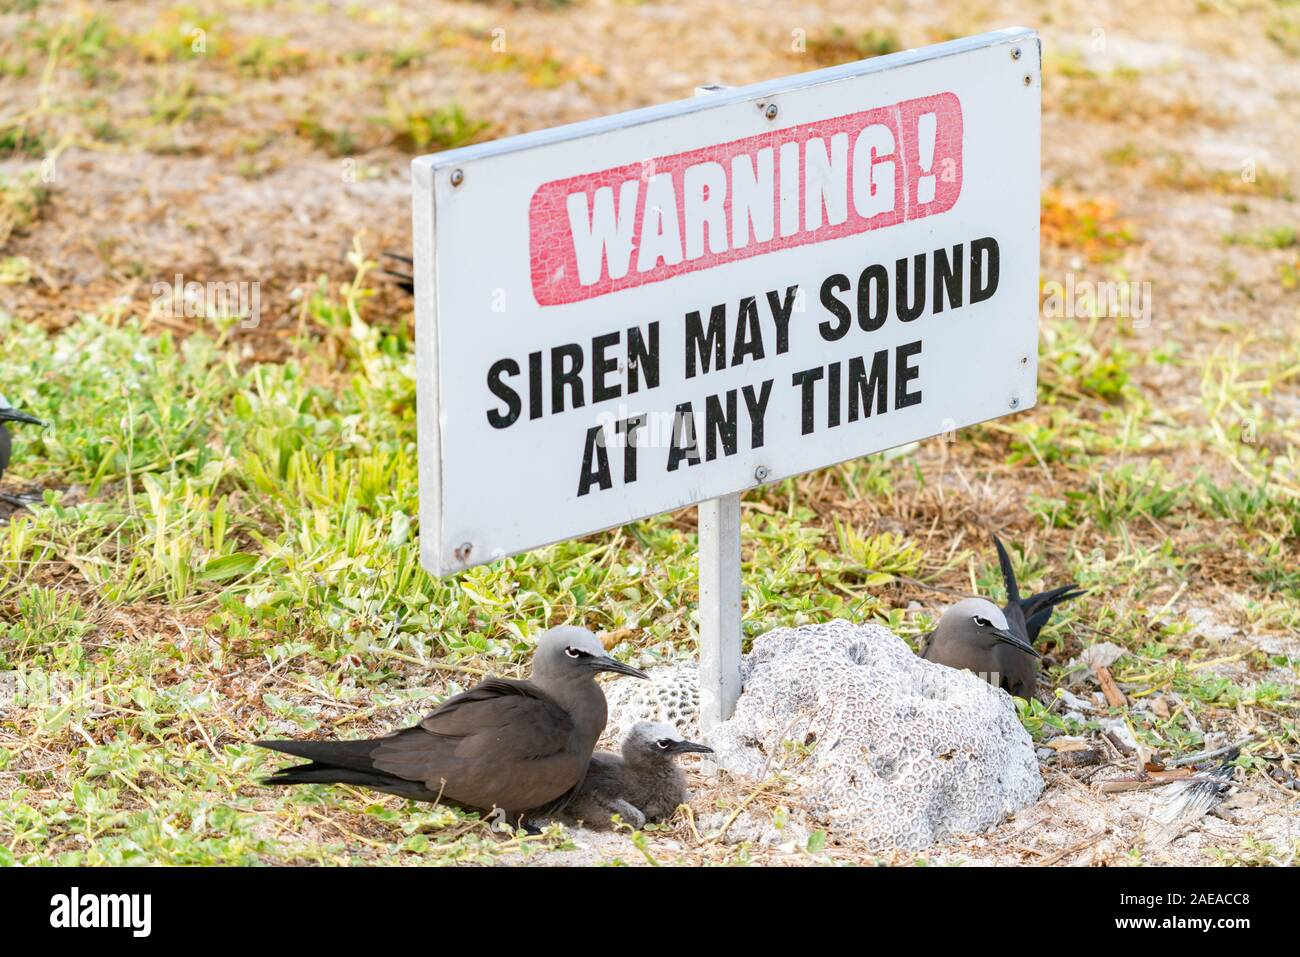 Common noddy nesting against lump of coral and under siren warning sign. Stock Photo